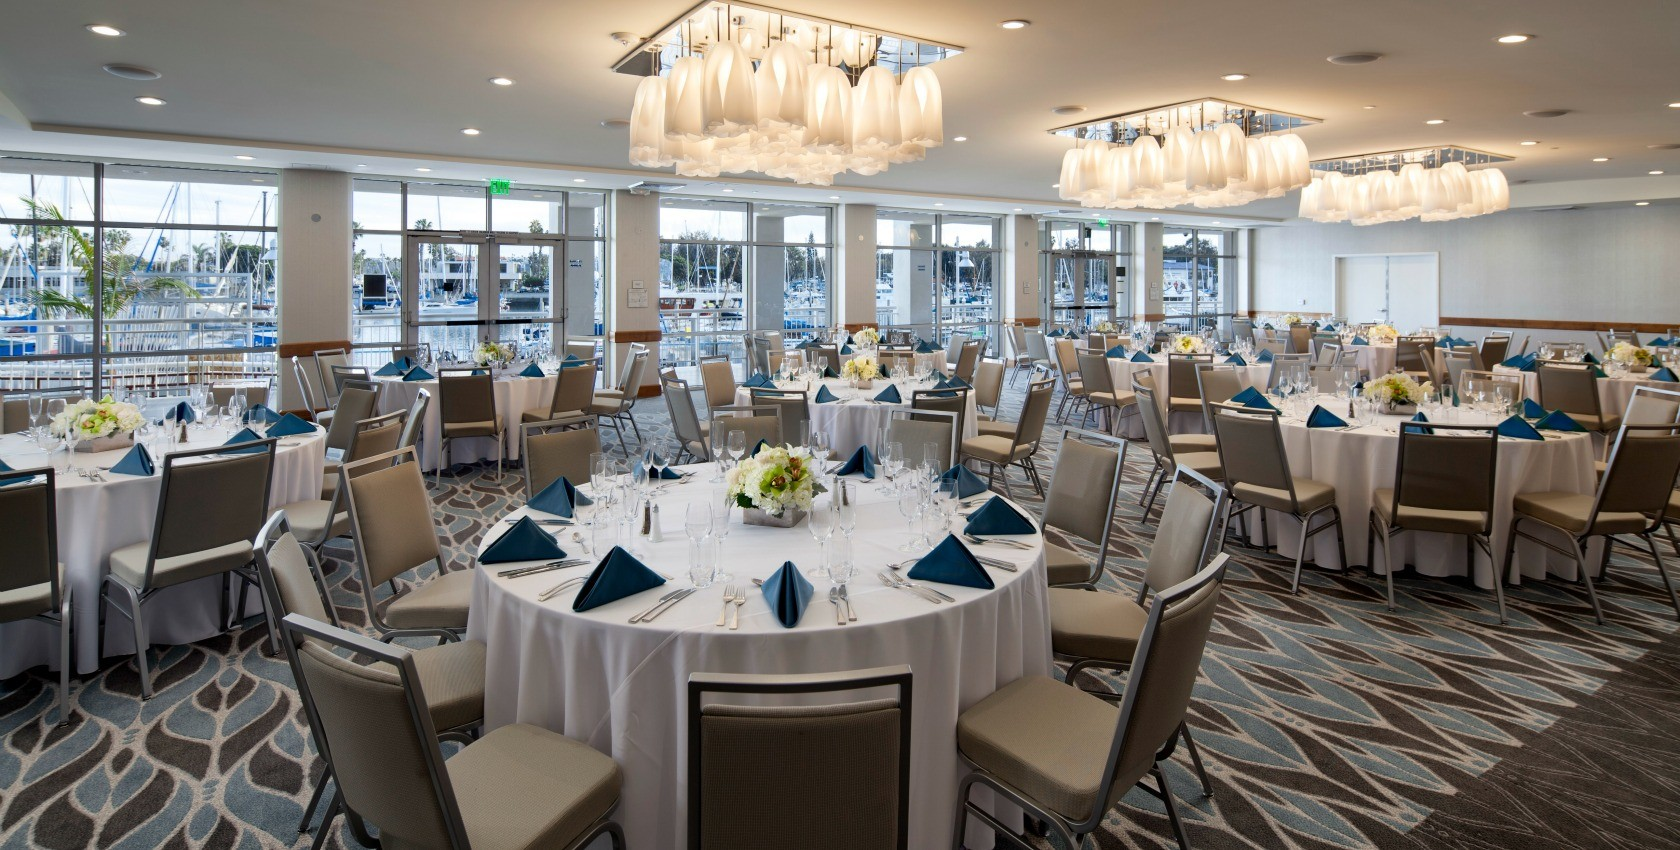 Restaurants With Meeting Rooms Near Me